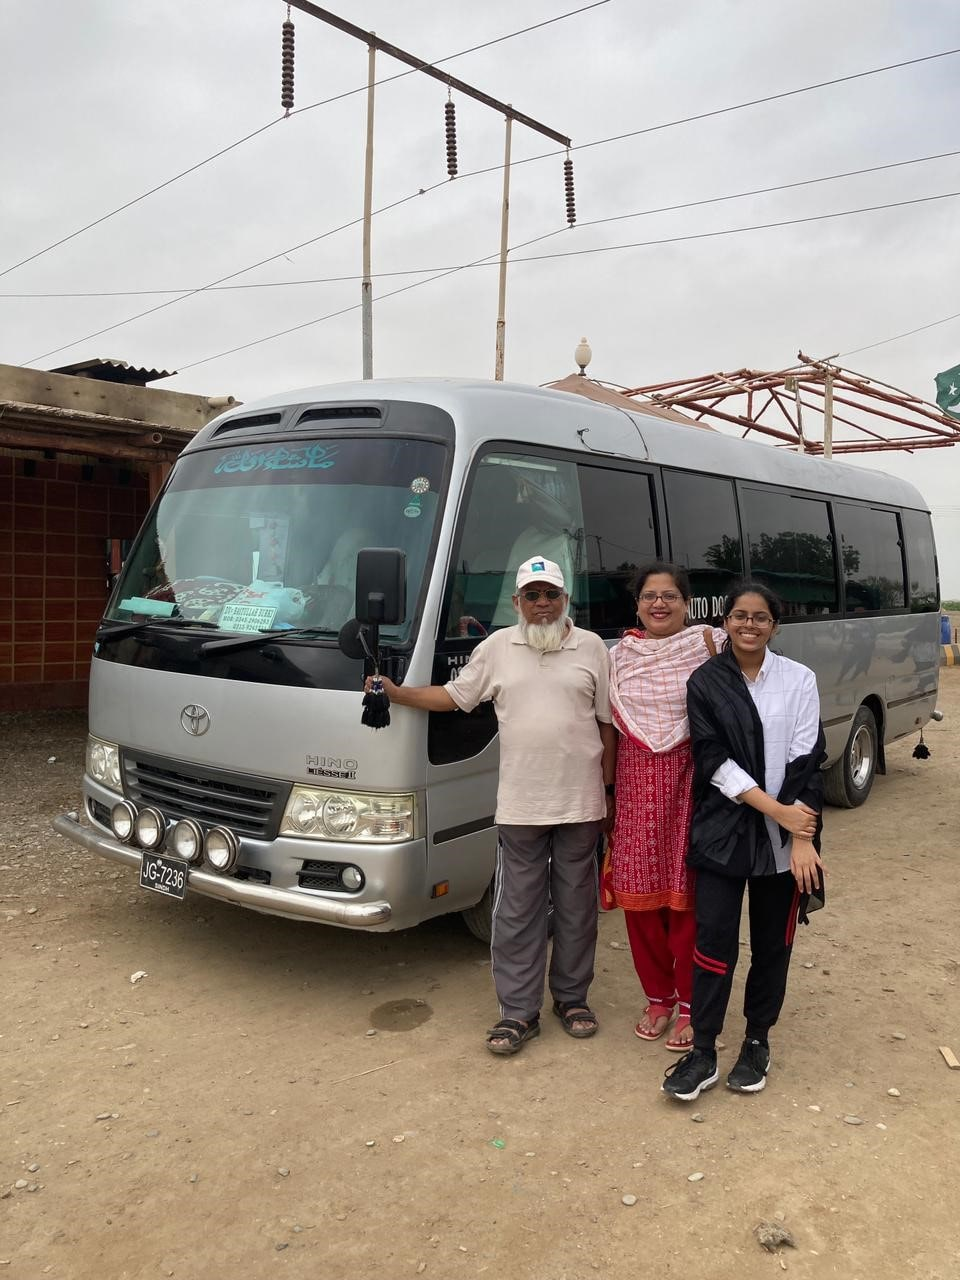 Engr. Iqbal Ahmed Khan in front of the Toyota Coaster with his daughter Dr. Kiran A. Rehman and granddaughter Mariam A. Rehman at Kund Malir.